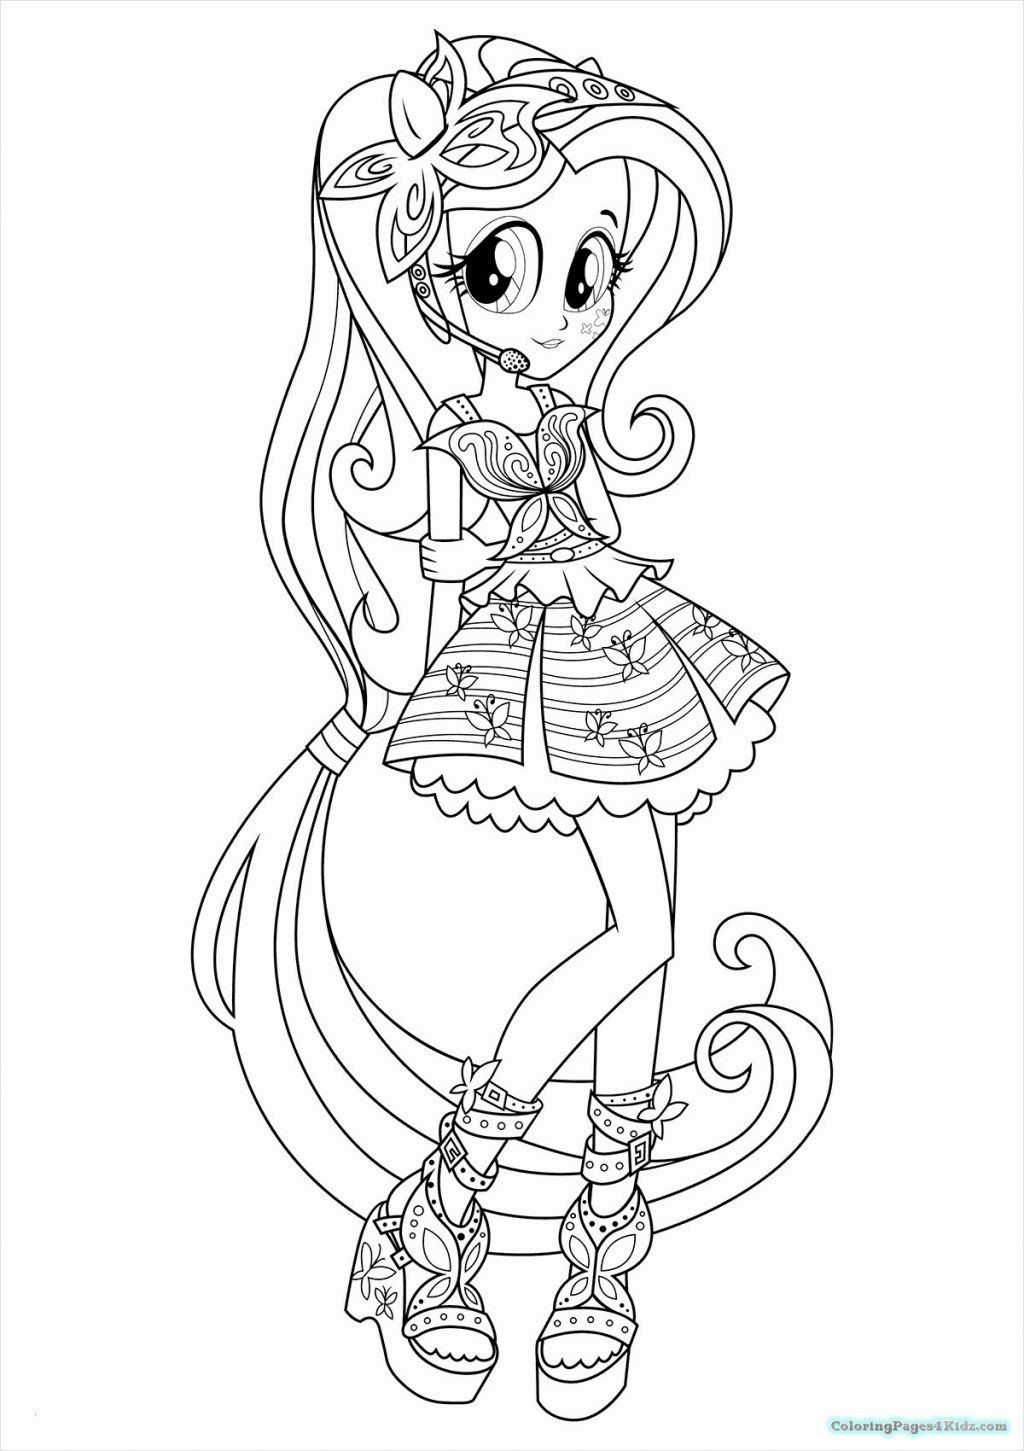 Equestria Girls Coloring Pages Luxury Dora Rockstar Coloring Pages Unique 10 Best Mlp My Little Pony Coloring Princess Coloring Pages Coloring Pages For Girls